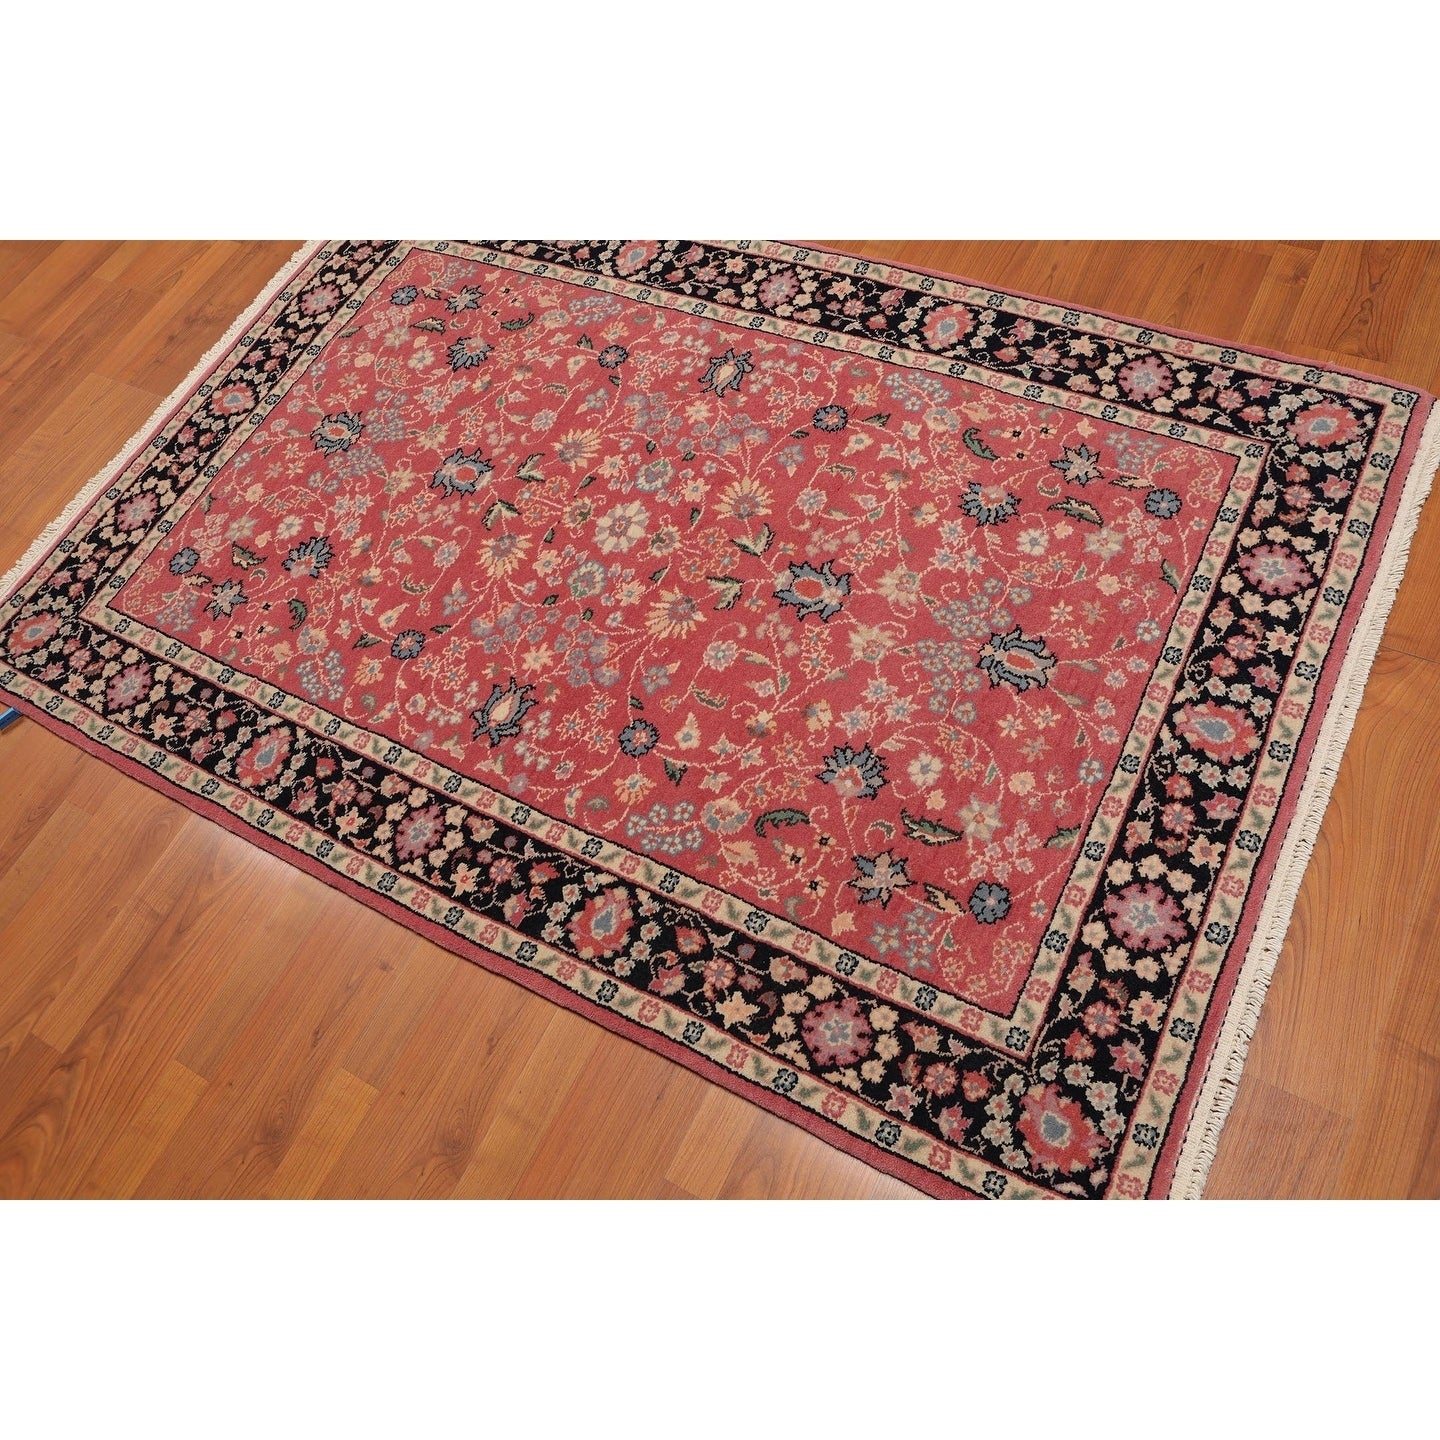 Traditional Persian Kashan Hand Knotted Wool Oriental Area Rug 4 X5 10 Rose Black 4 X 5 10 On Sale Overstock 23443279